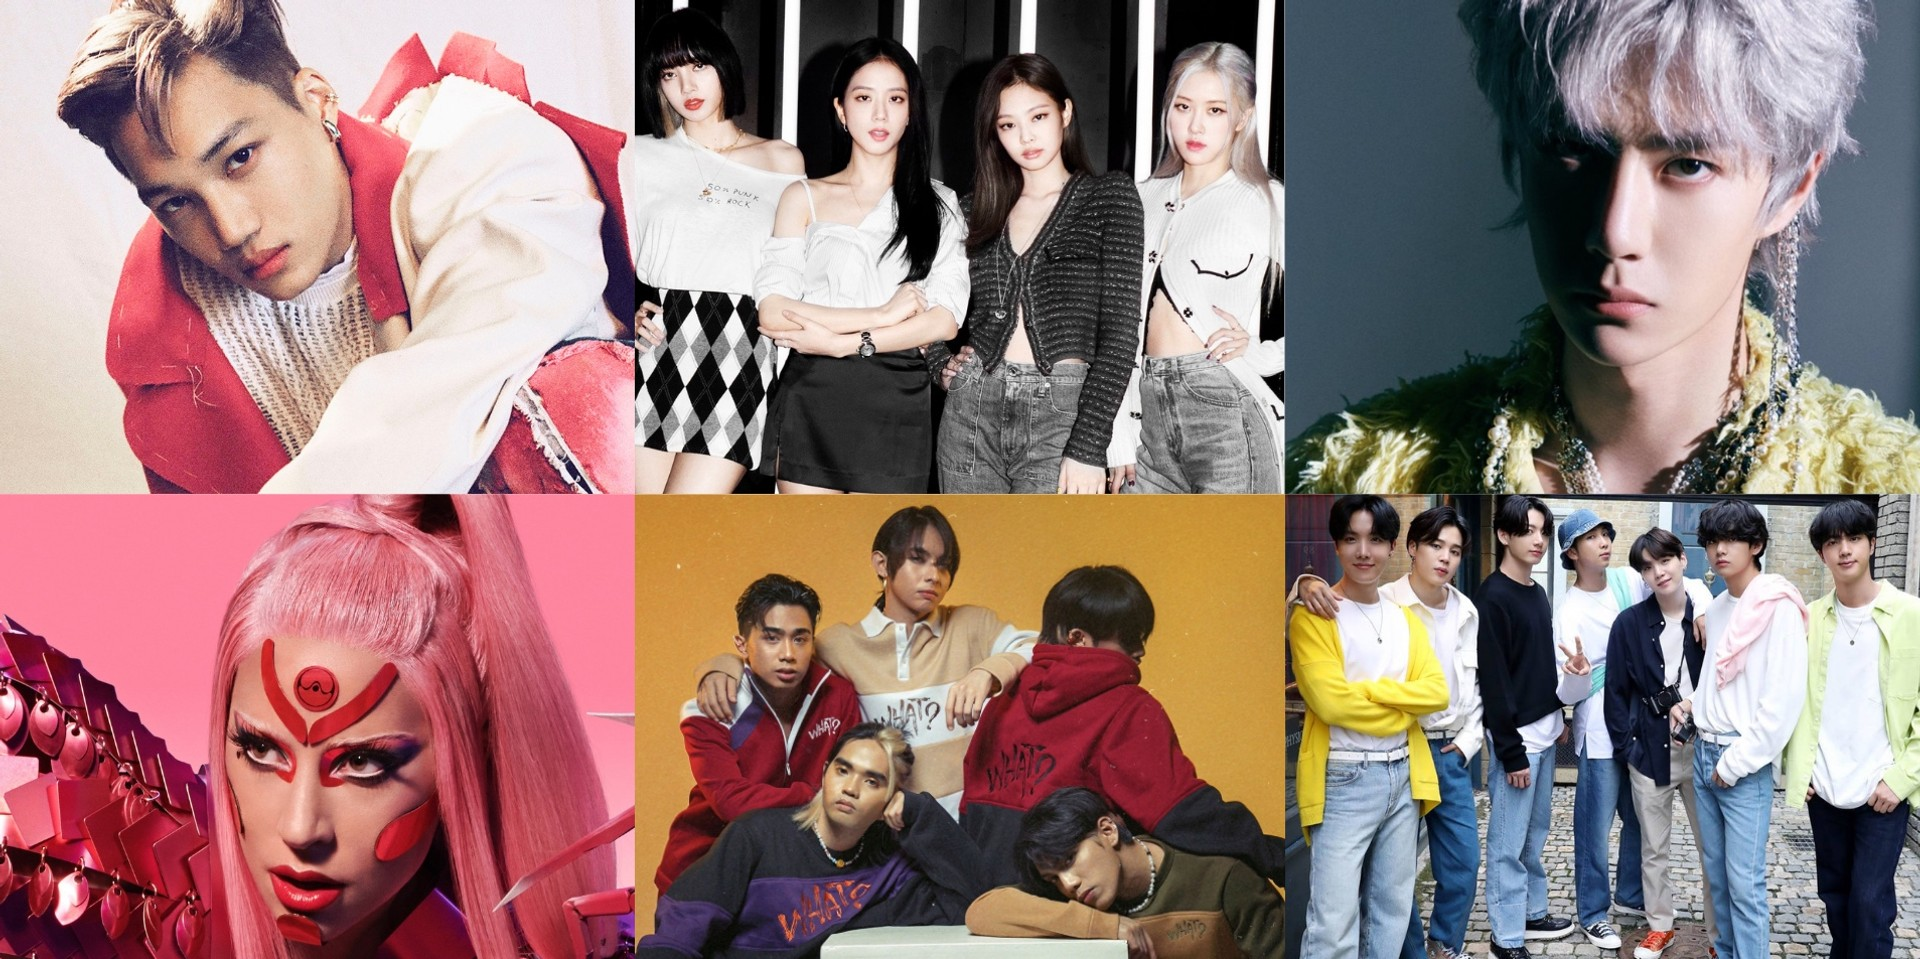 14 collaborative creations between artists and brands — featuring merchandise and collections from BTS, BLACKPINK, EXO's Kai, SB19, Wang Yibo, and more